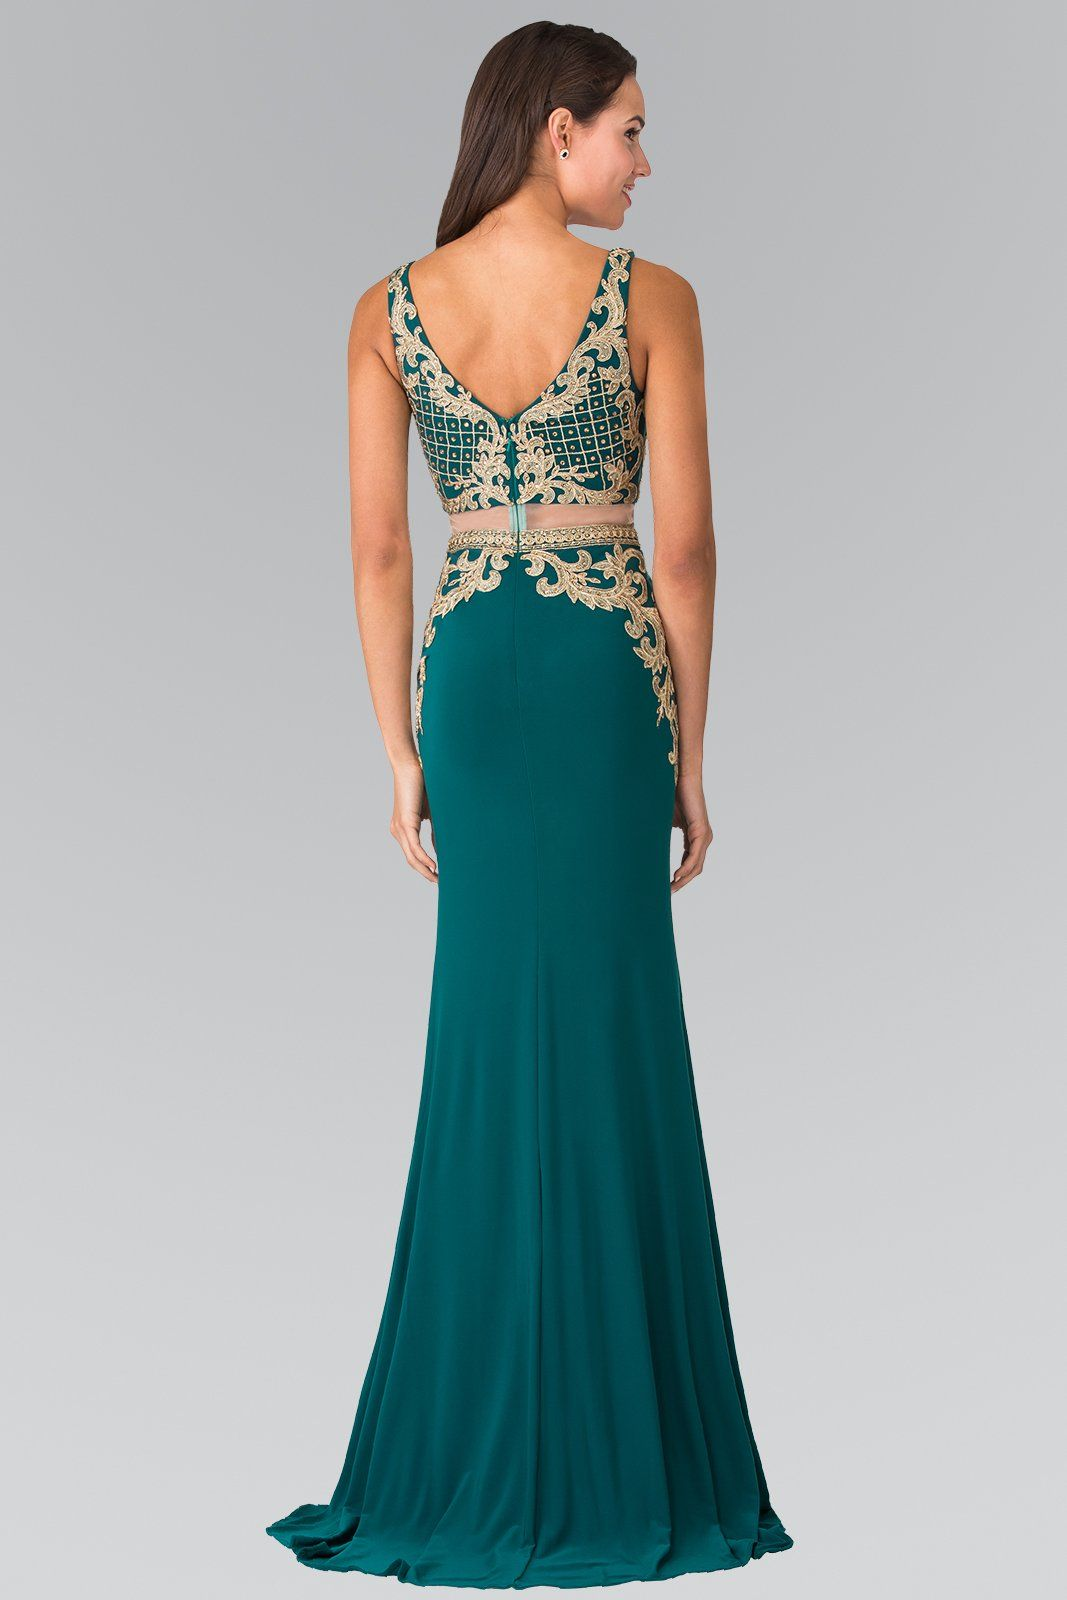 Crop top 2 piece prom dress with gold lace gl2334 – Simply Fab Dress